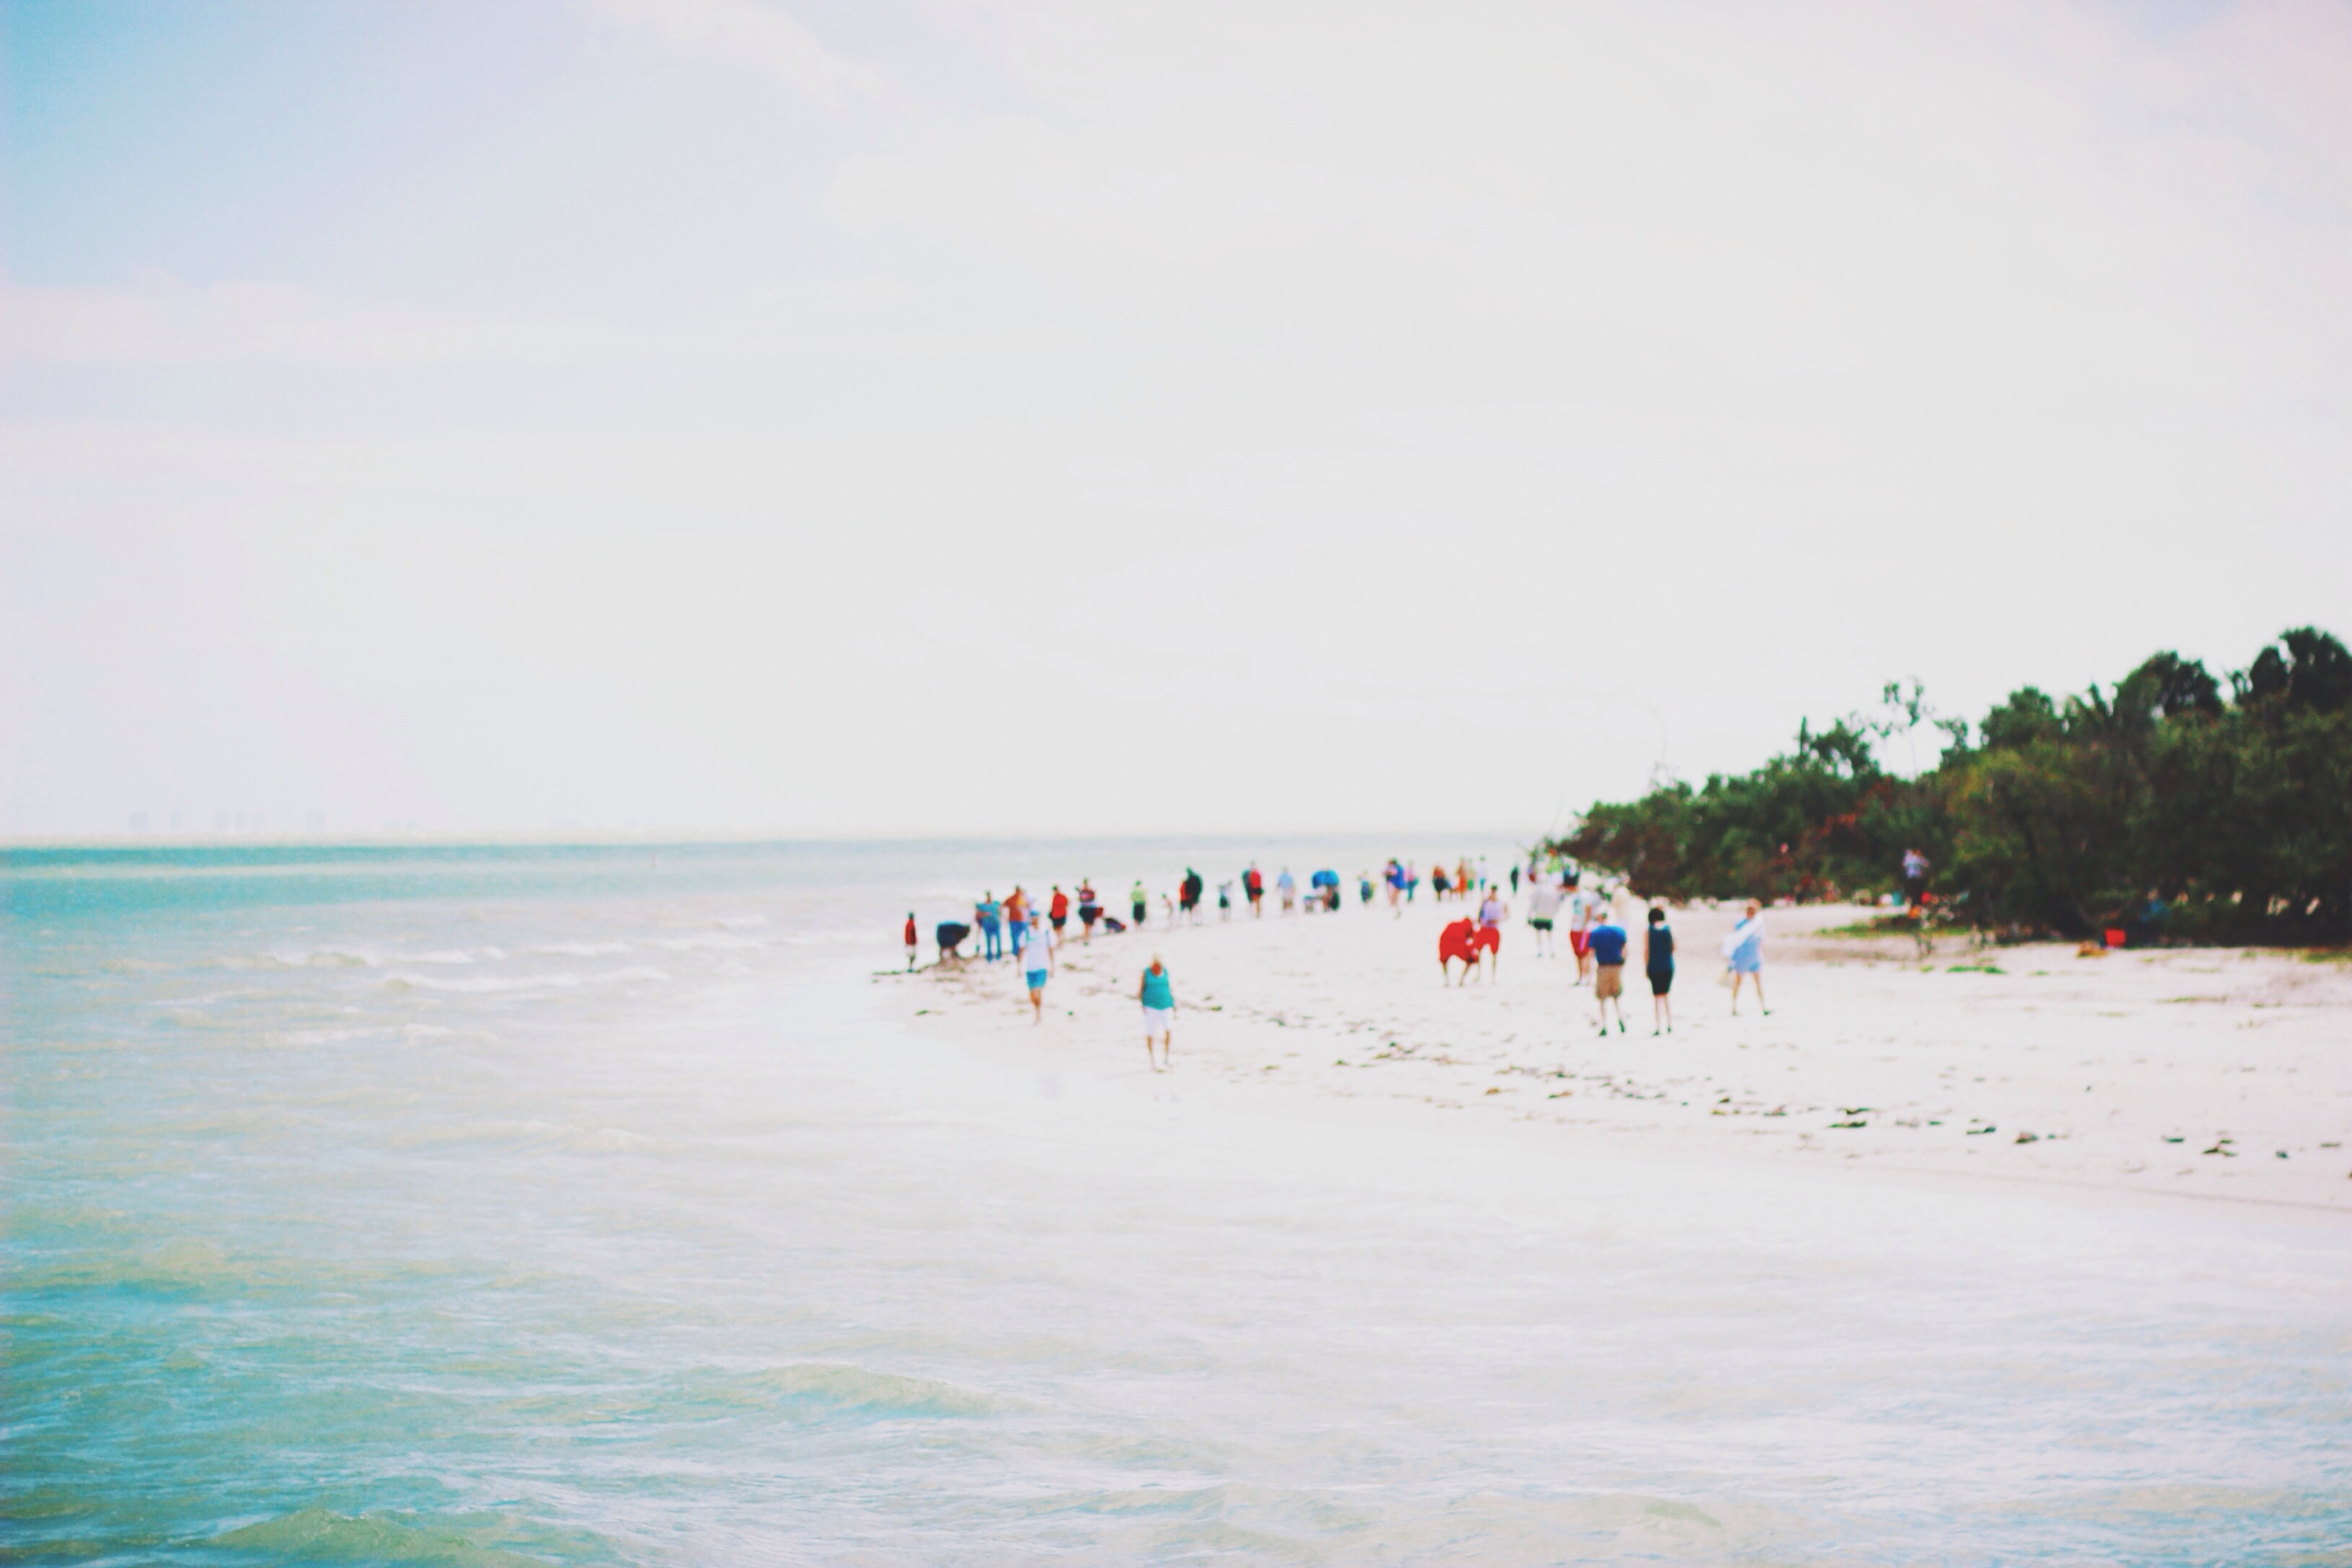 People dressed in an array of bright colors stand along the blue sea shore.